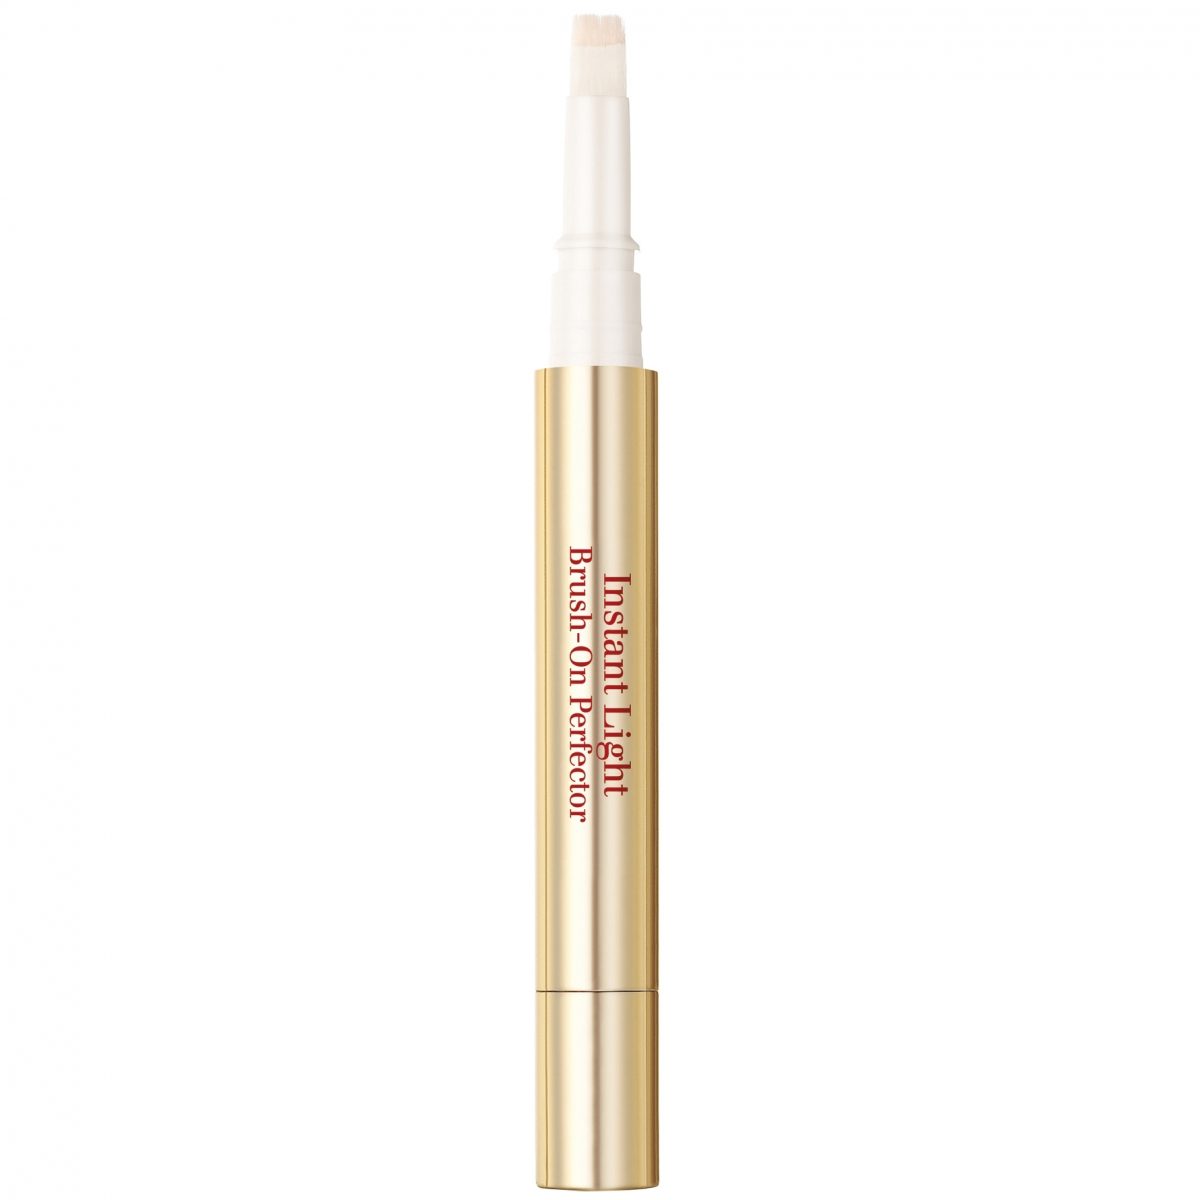 Clarins Instant Light Brush On Perfector Fri Frakt